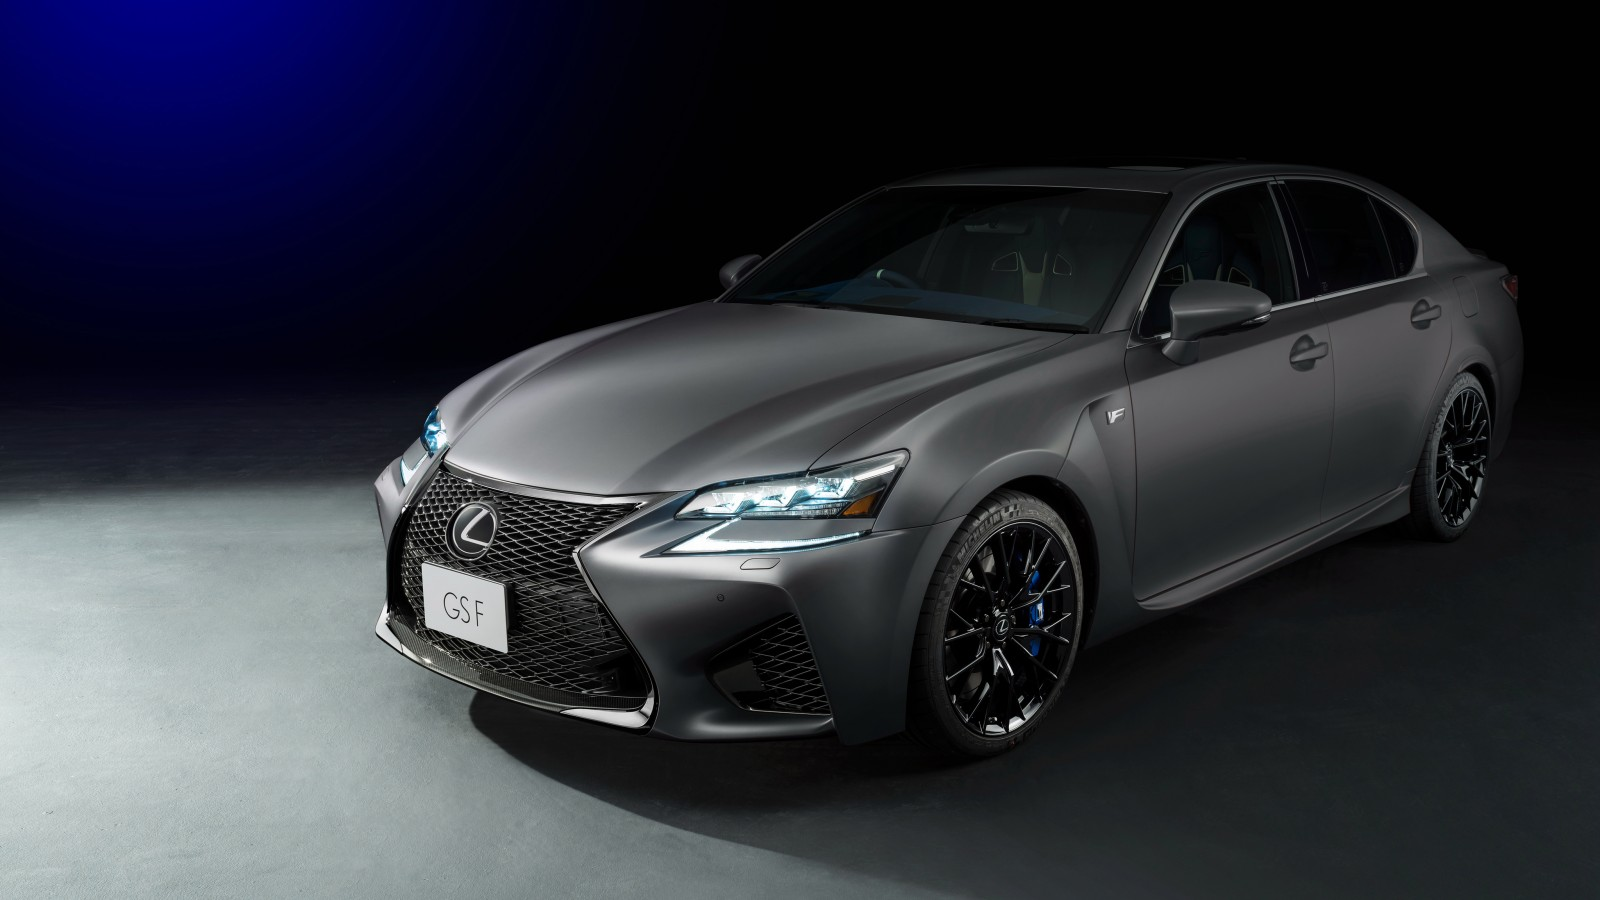 X Japan Wallpaper Hd 2018 Lexus Gs F 10th Anniversary Limited Edition 4k